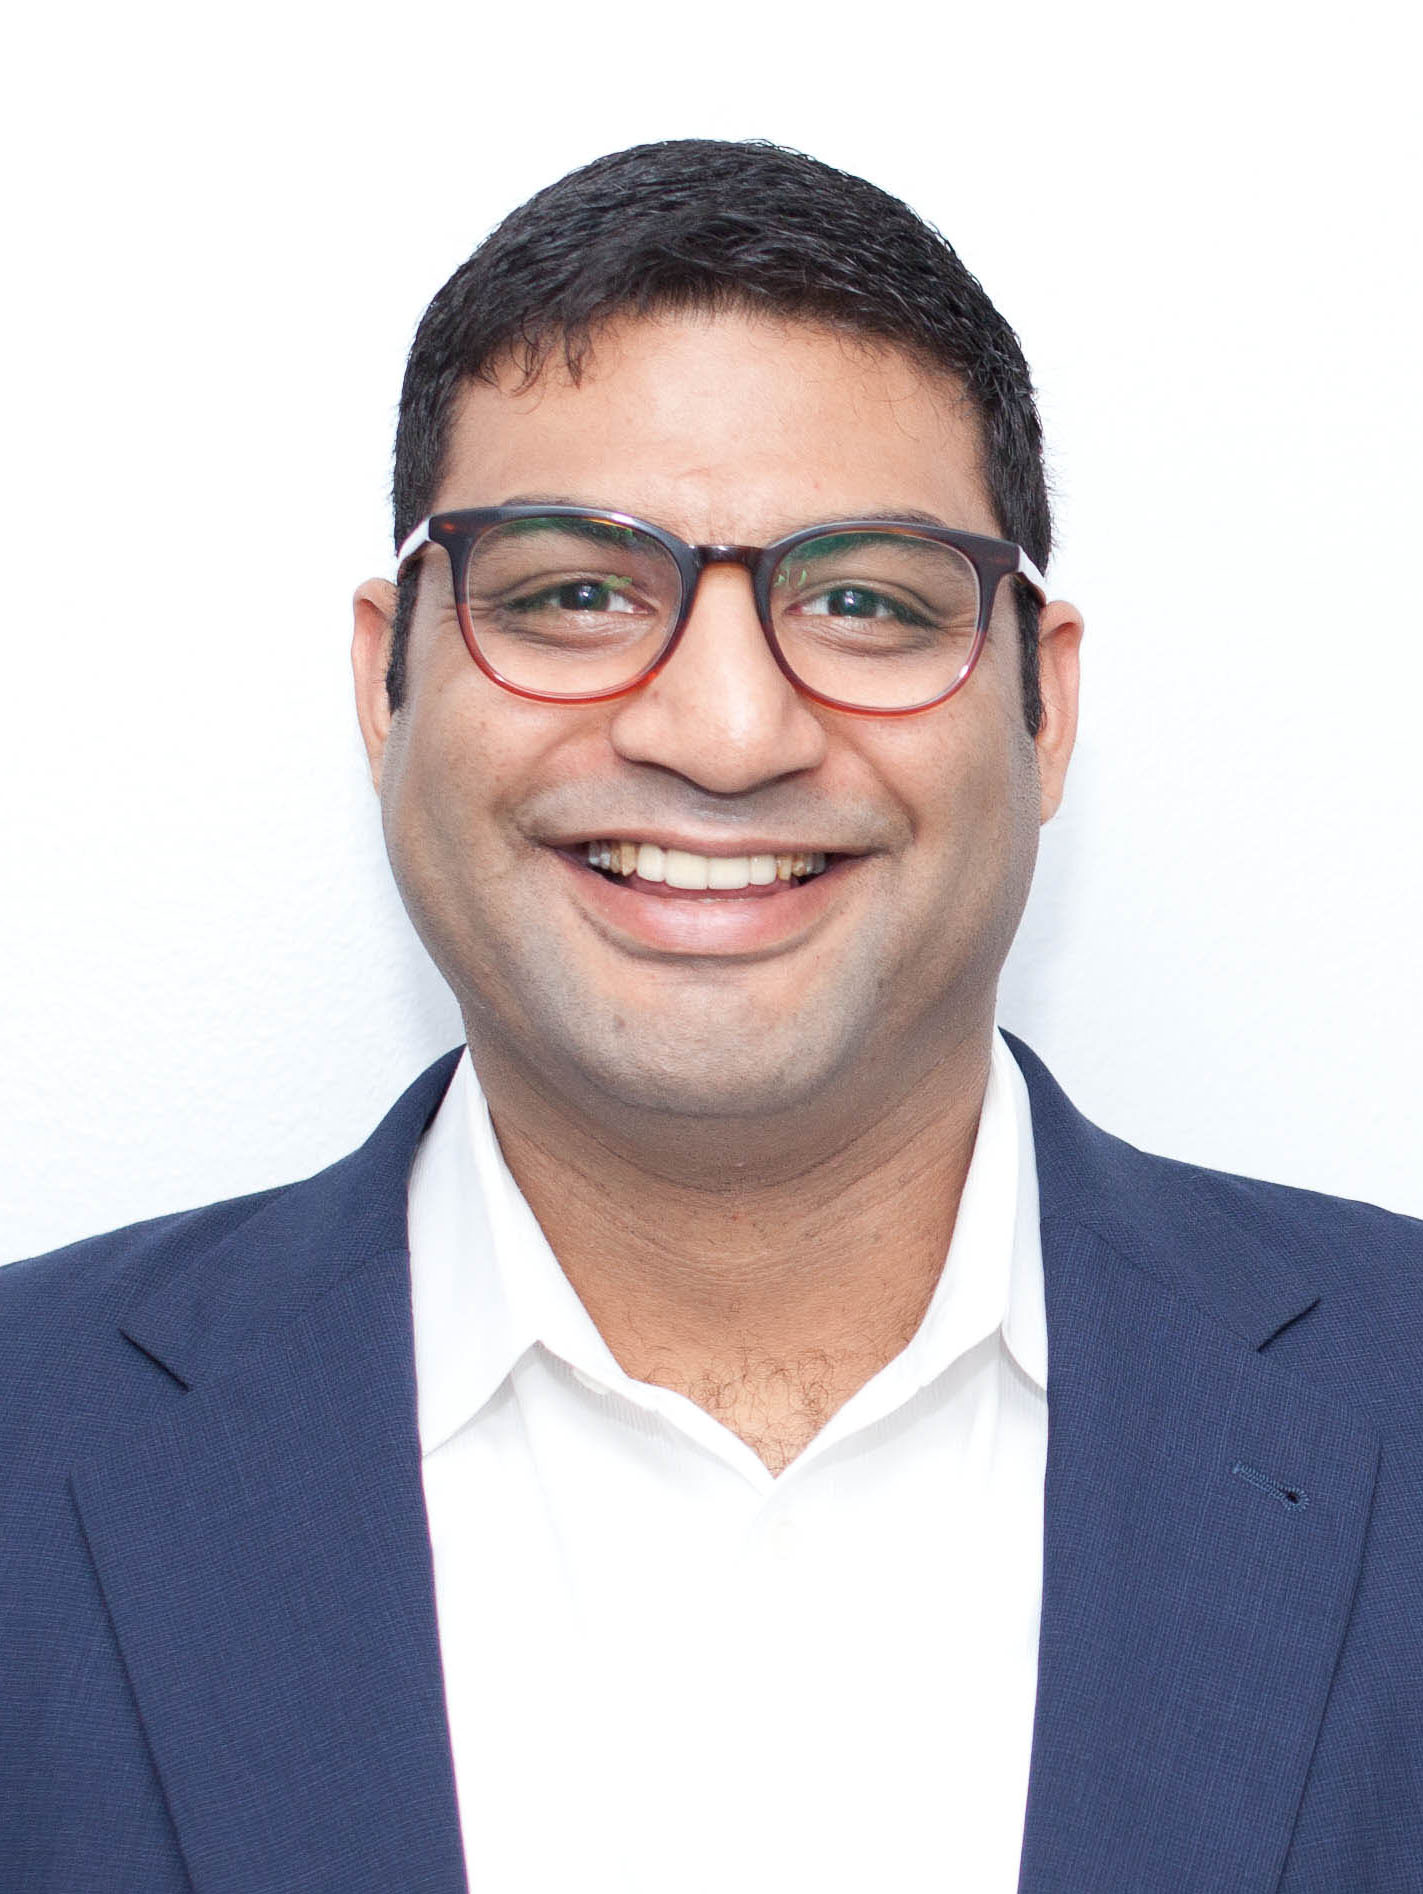 Amin Noorani, Director of Lending